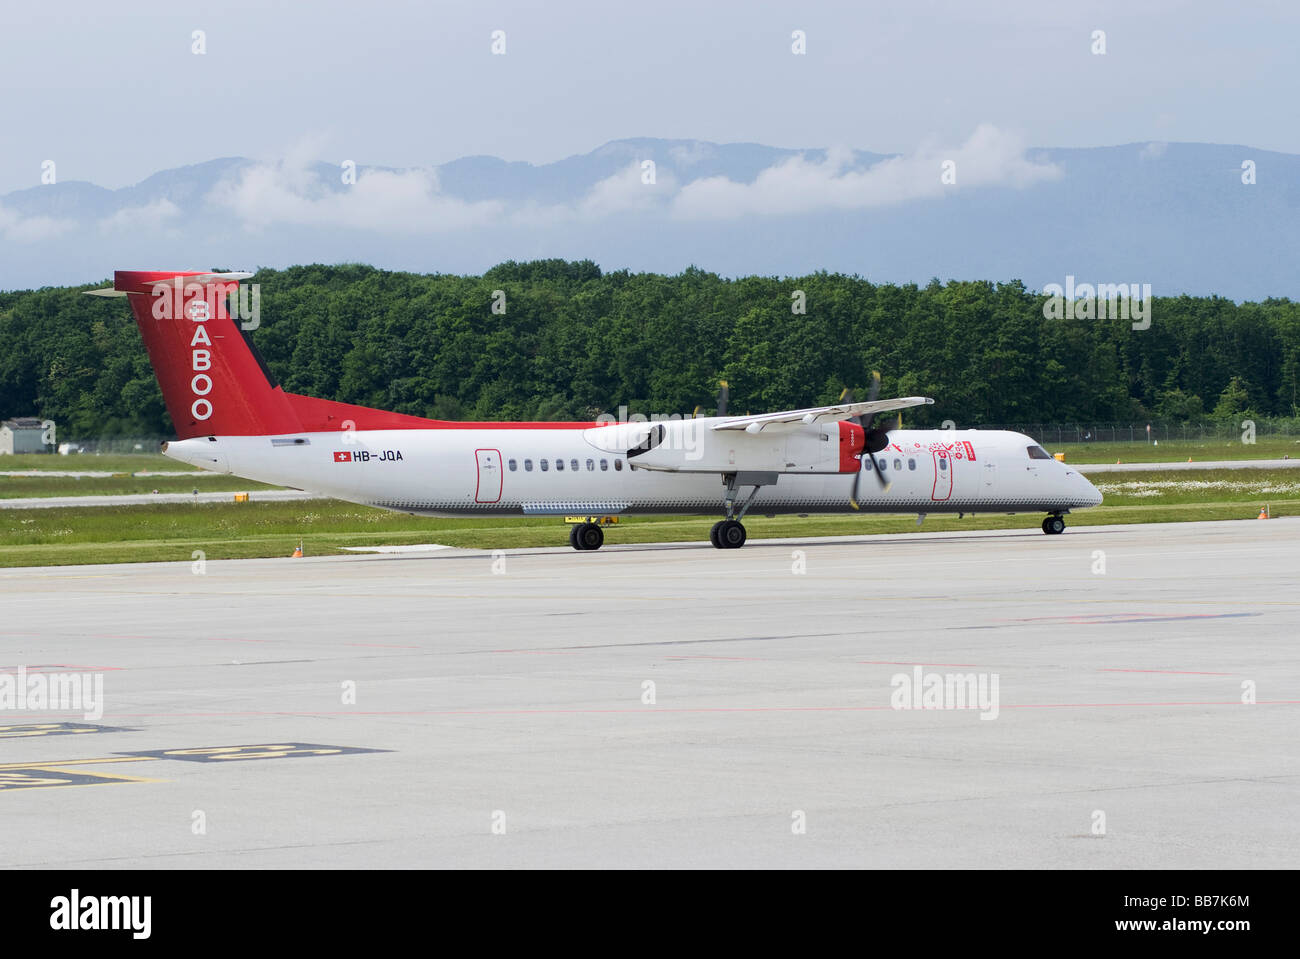 Baboo Airlines Bombardier DHC-8-402 Q400 HB-JQA Airliner Taxiing at Geneva Airport Switzerland Geneve Suisse Stock Photo